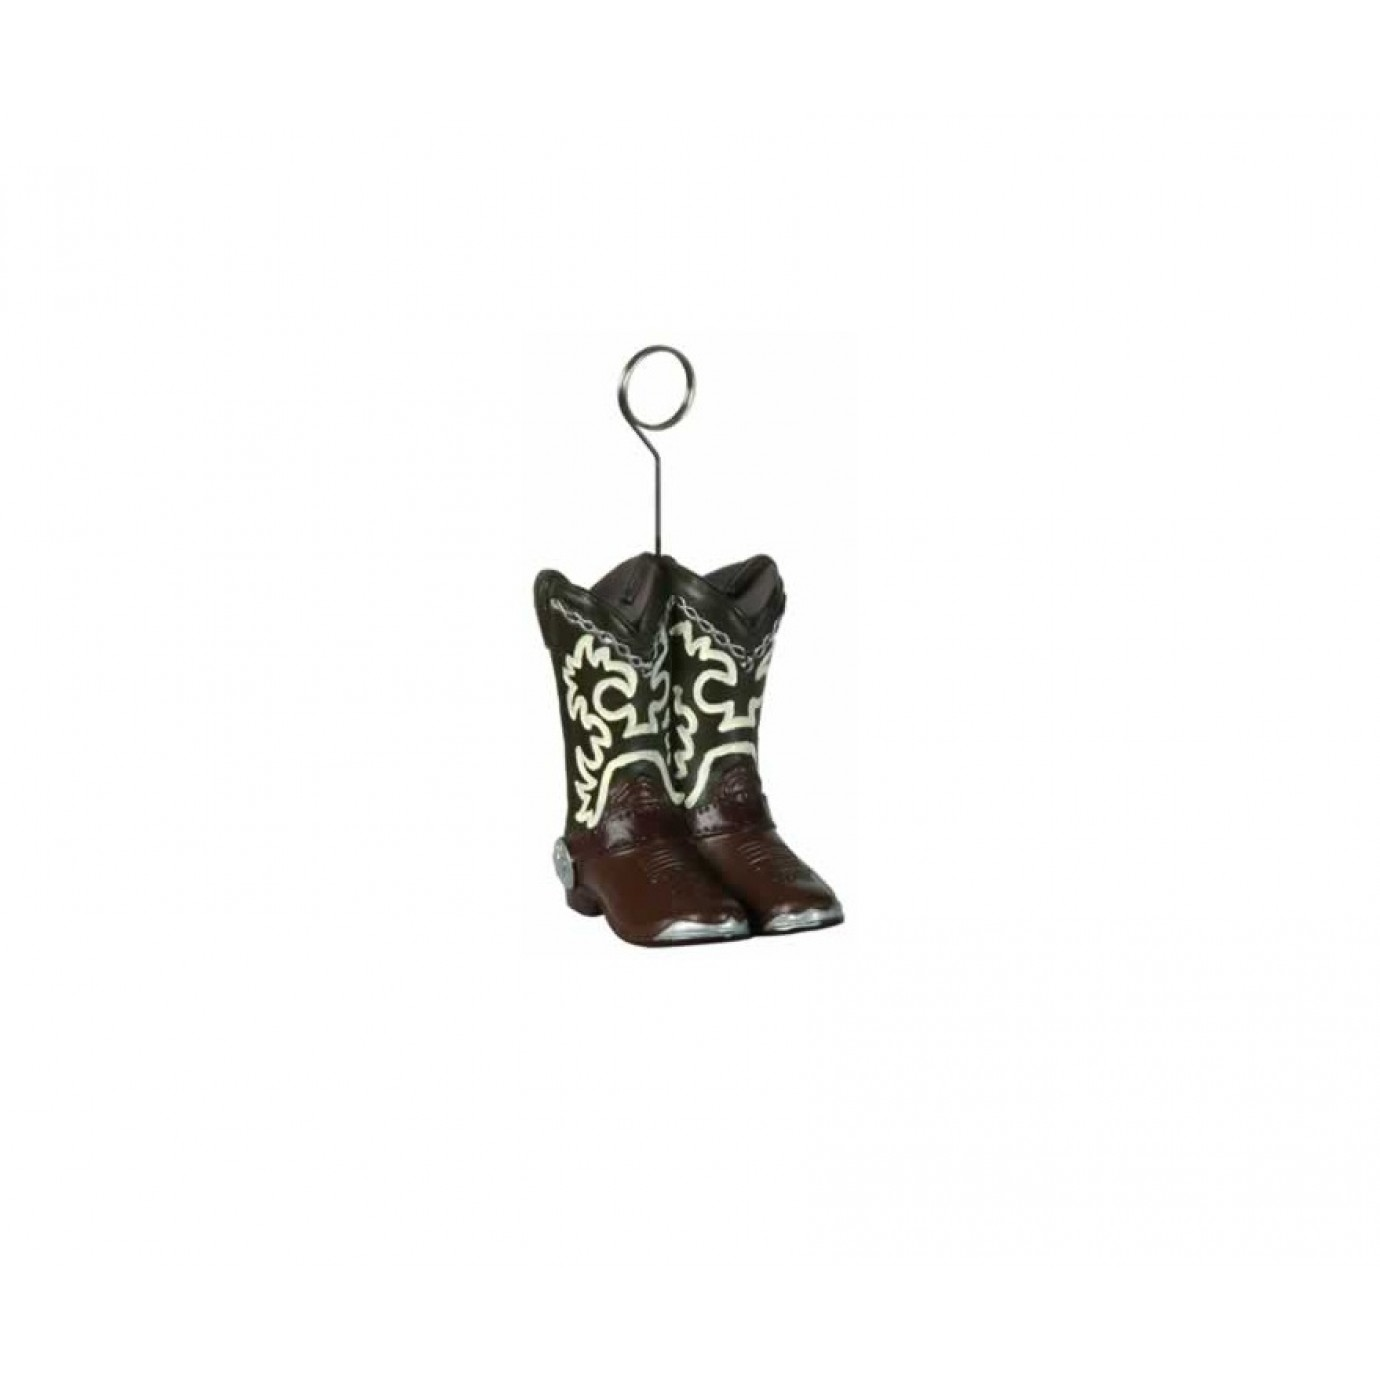 480b3eef27e Balloon or Photo Holder, Cowboy Boots